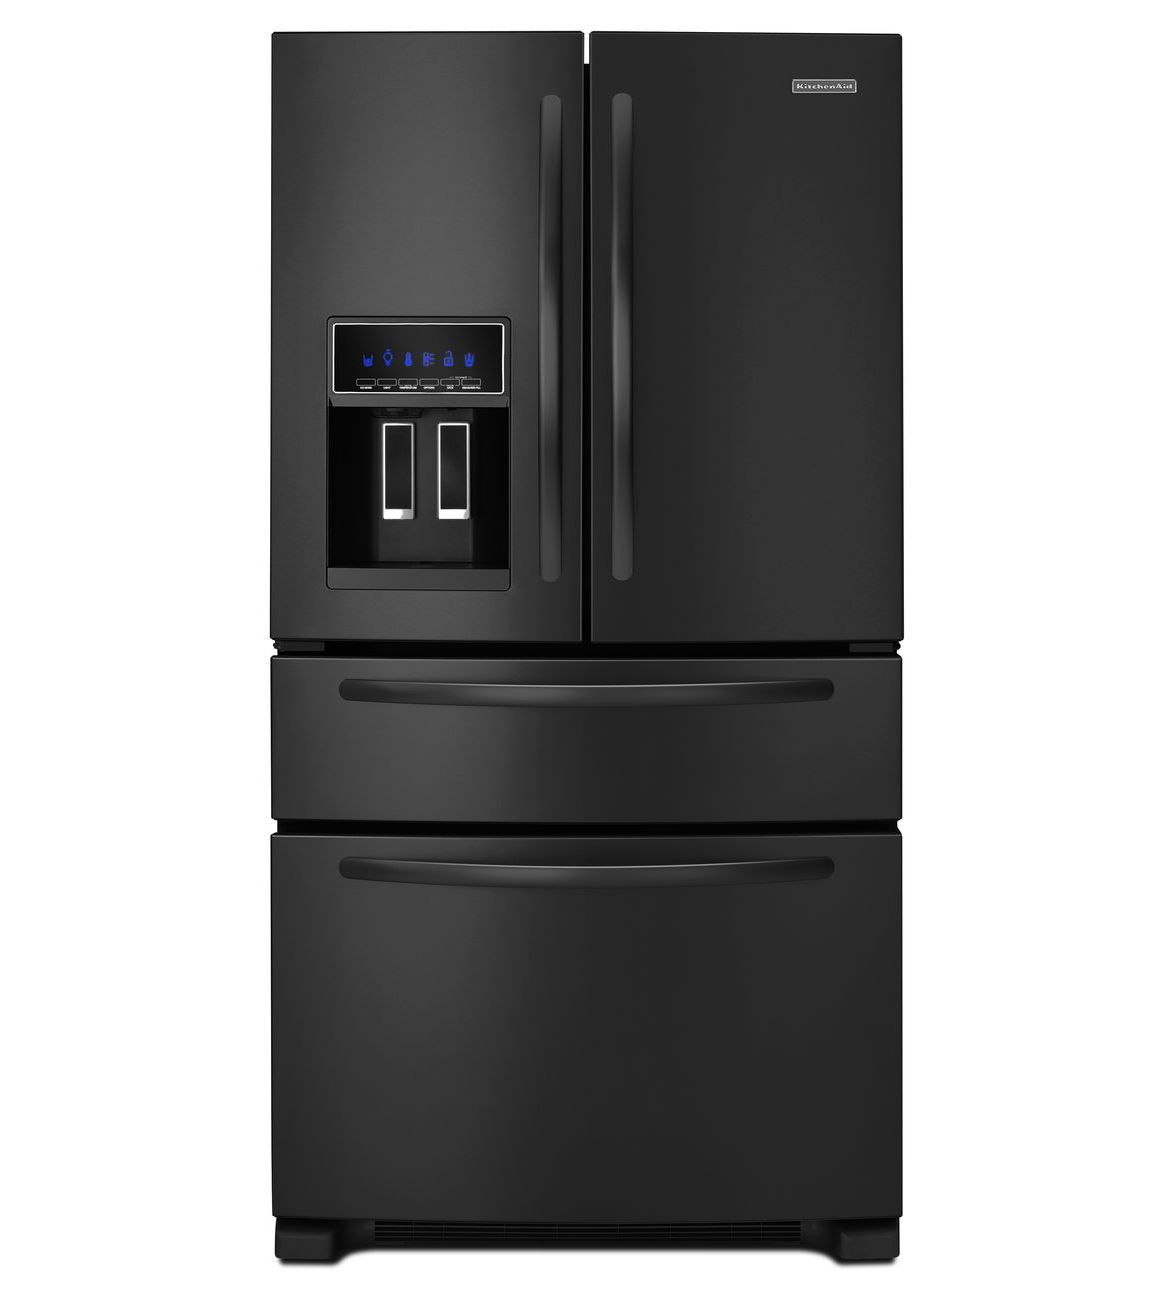 High Quality Learn About Features And Specifications For The KitchenAid 24 Cu.  Standard Depth Four Door French Door Refrigerator, Architect® Series II )